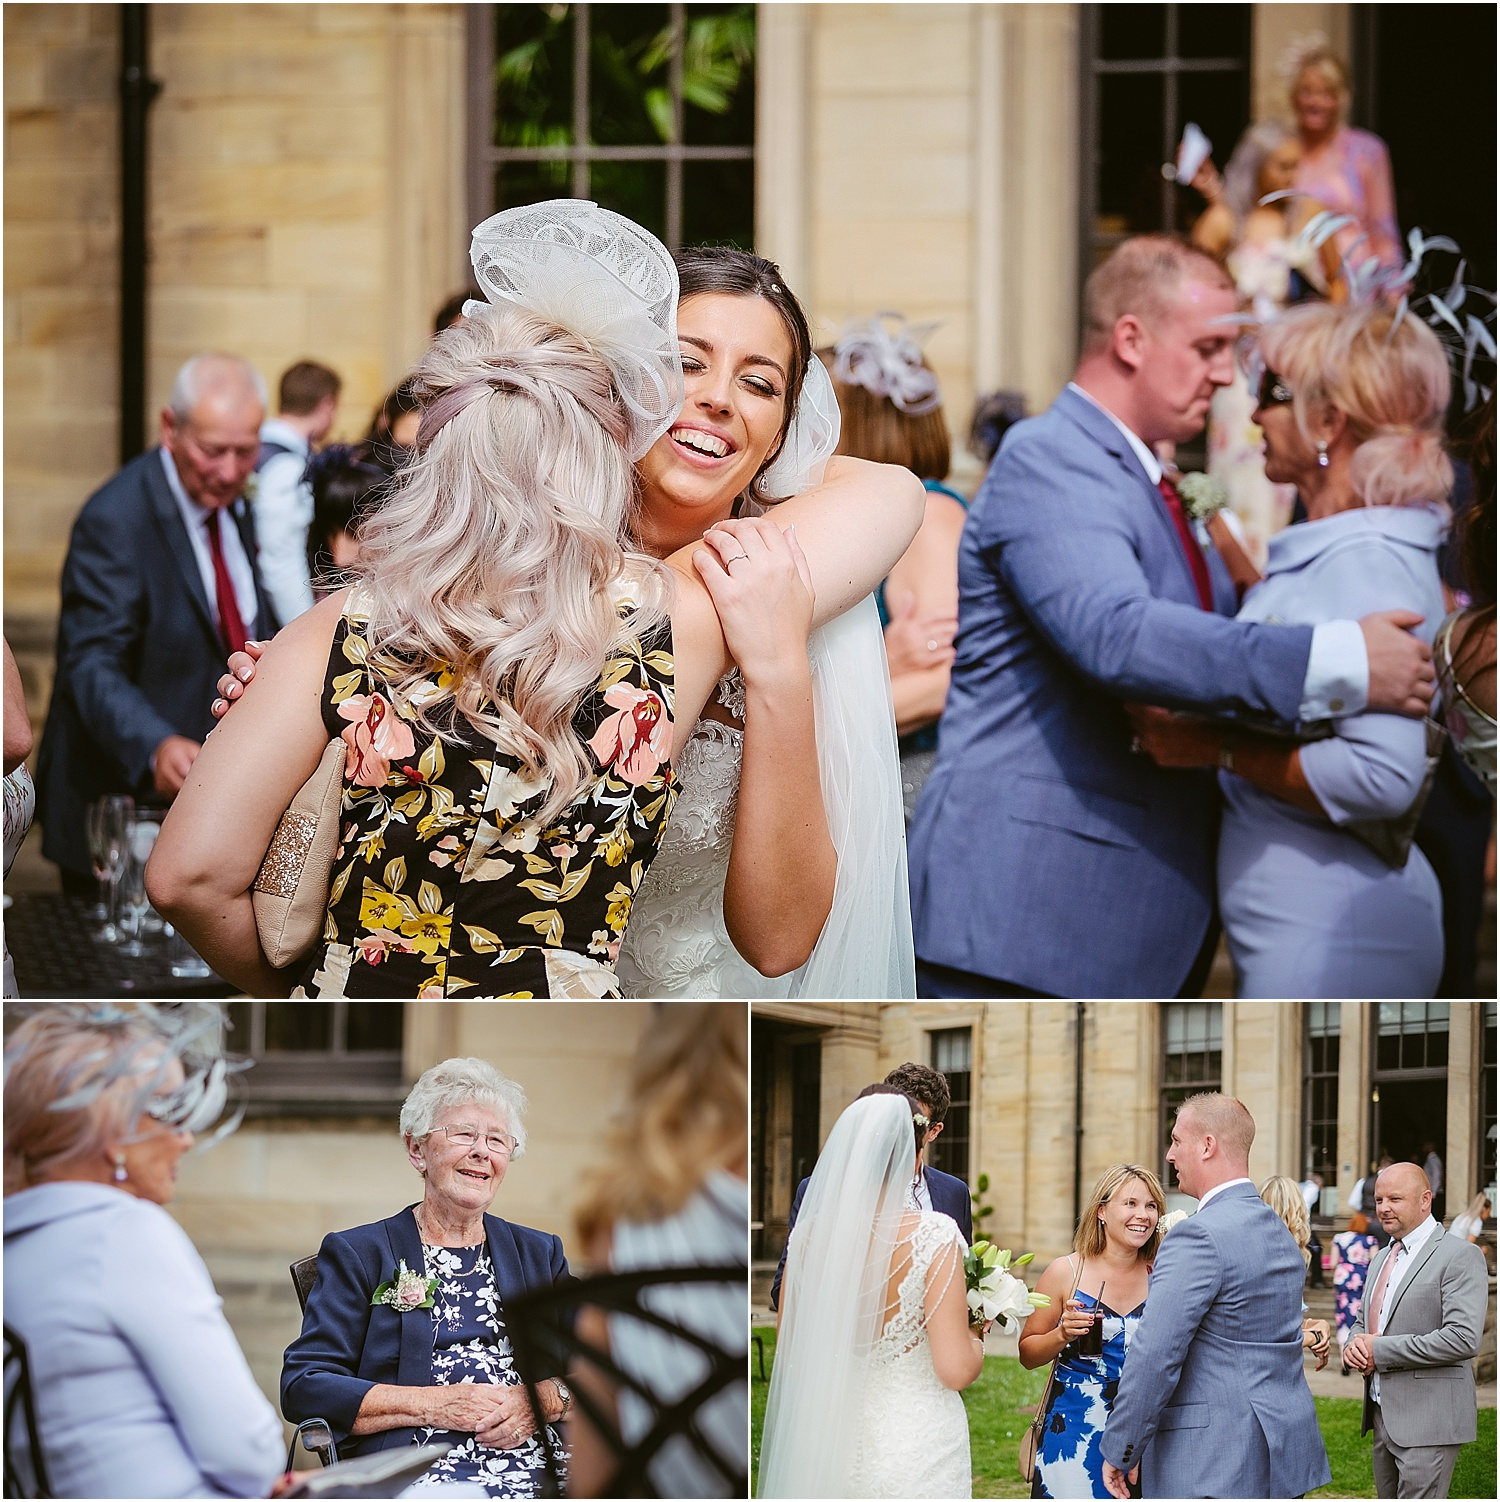 Wedding at Beamish Hall - wedding photography by www.2tonephotography.co.uk 164.jpg